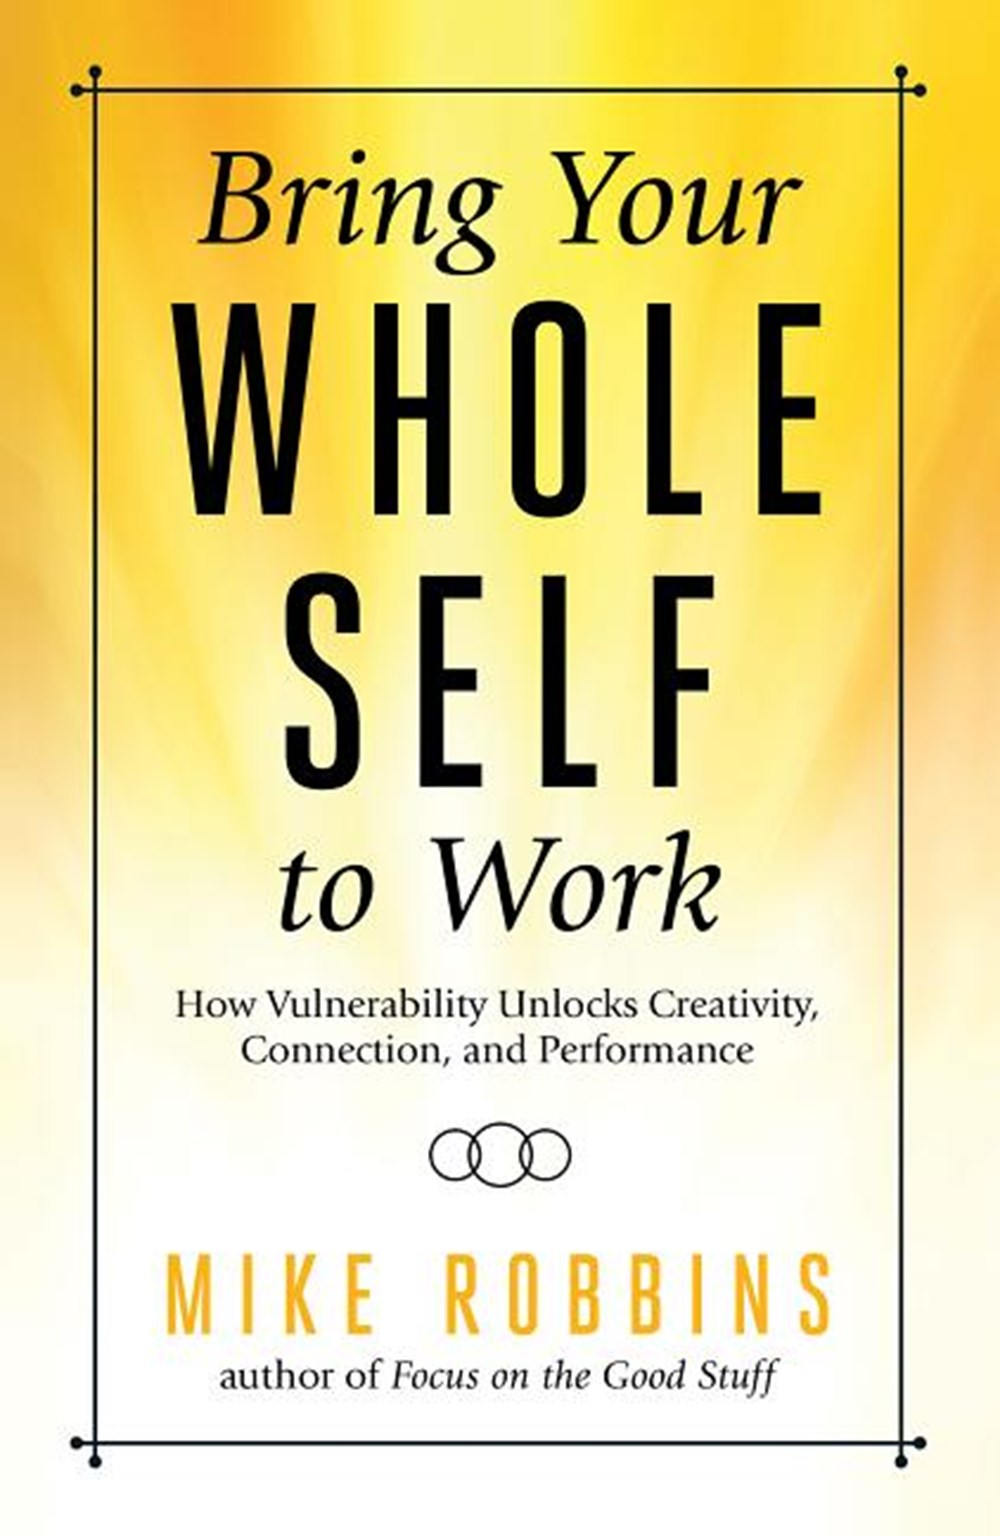 Bring Your Whole Self to Work How Vulnerability Unlocks Creativity, Connection, and Performance